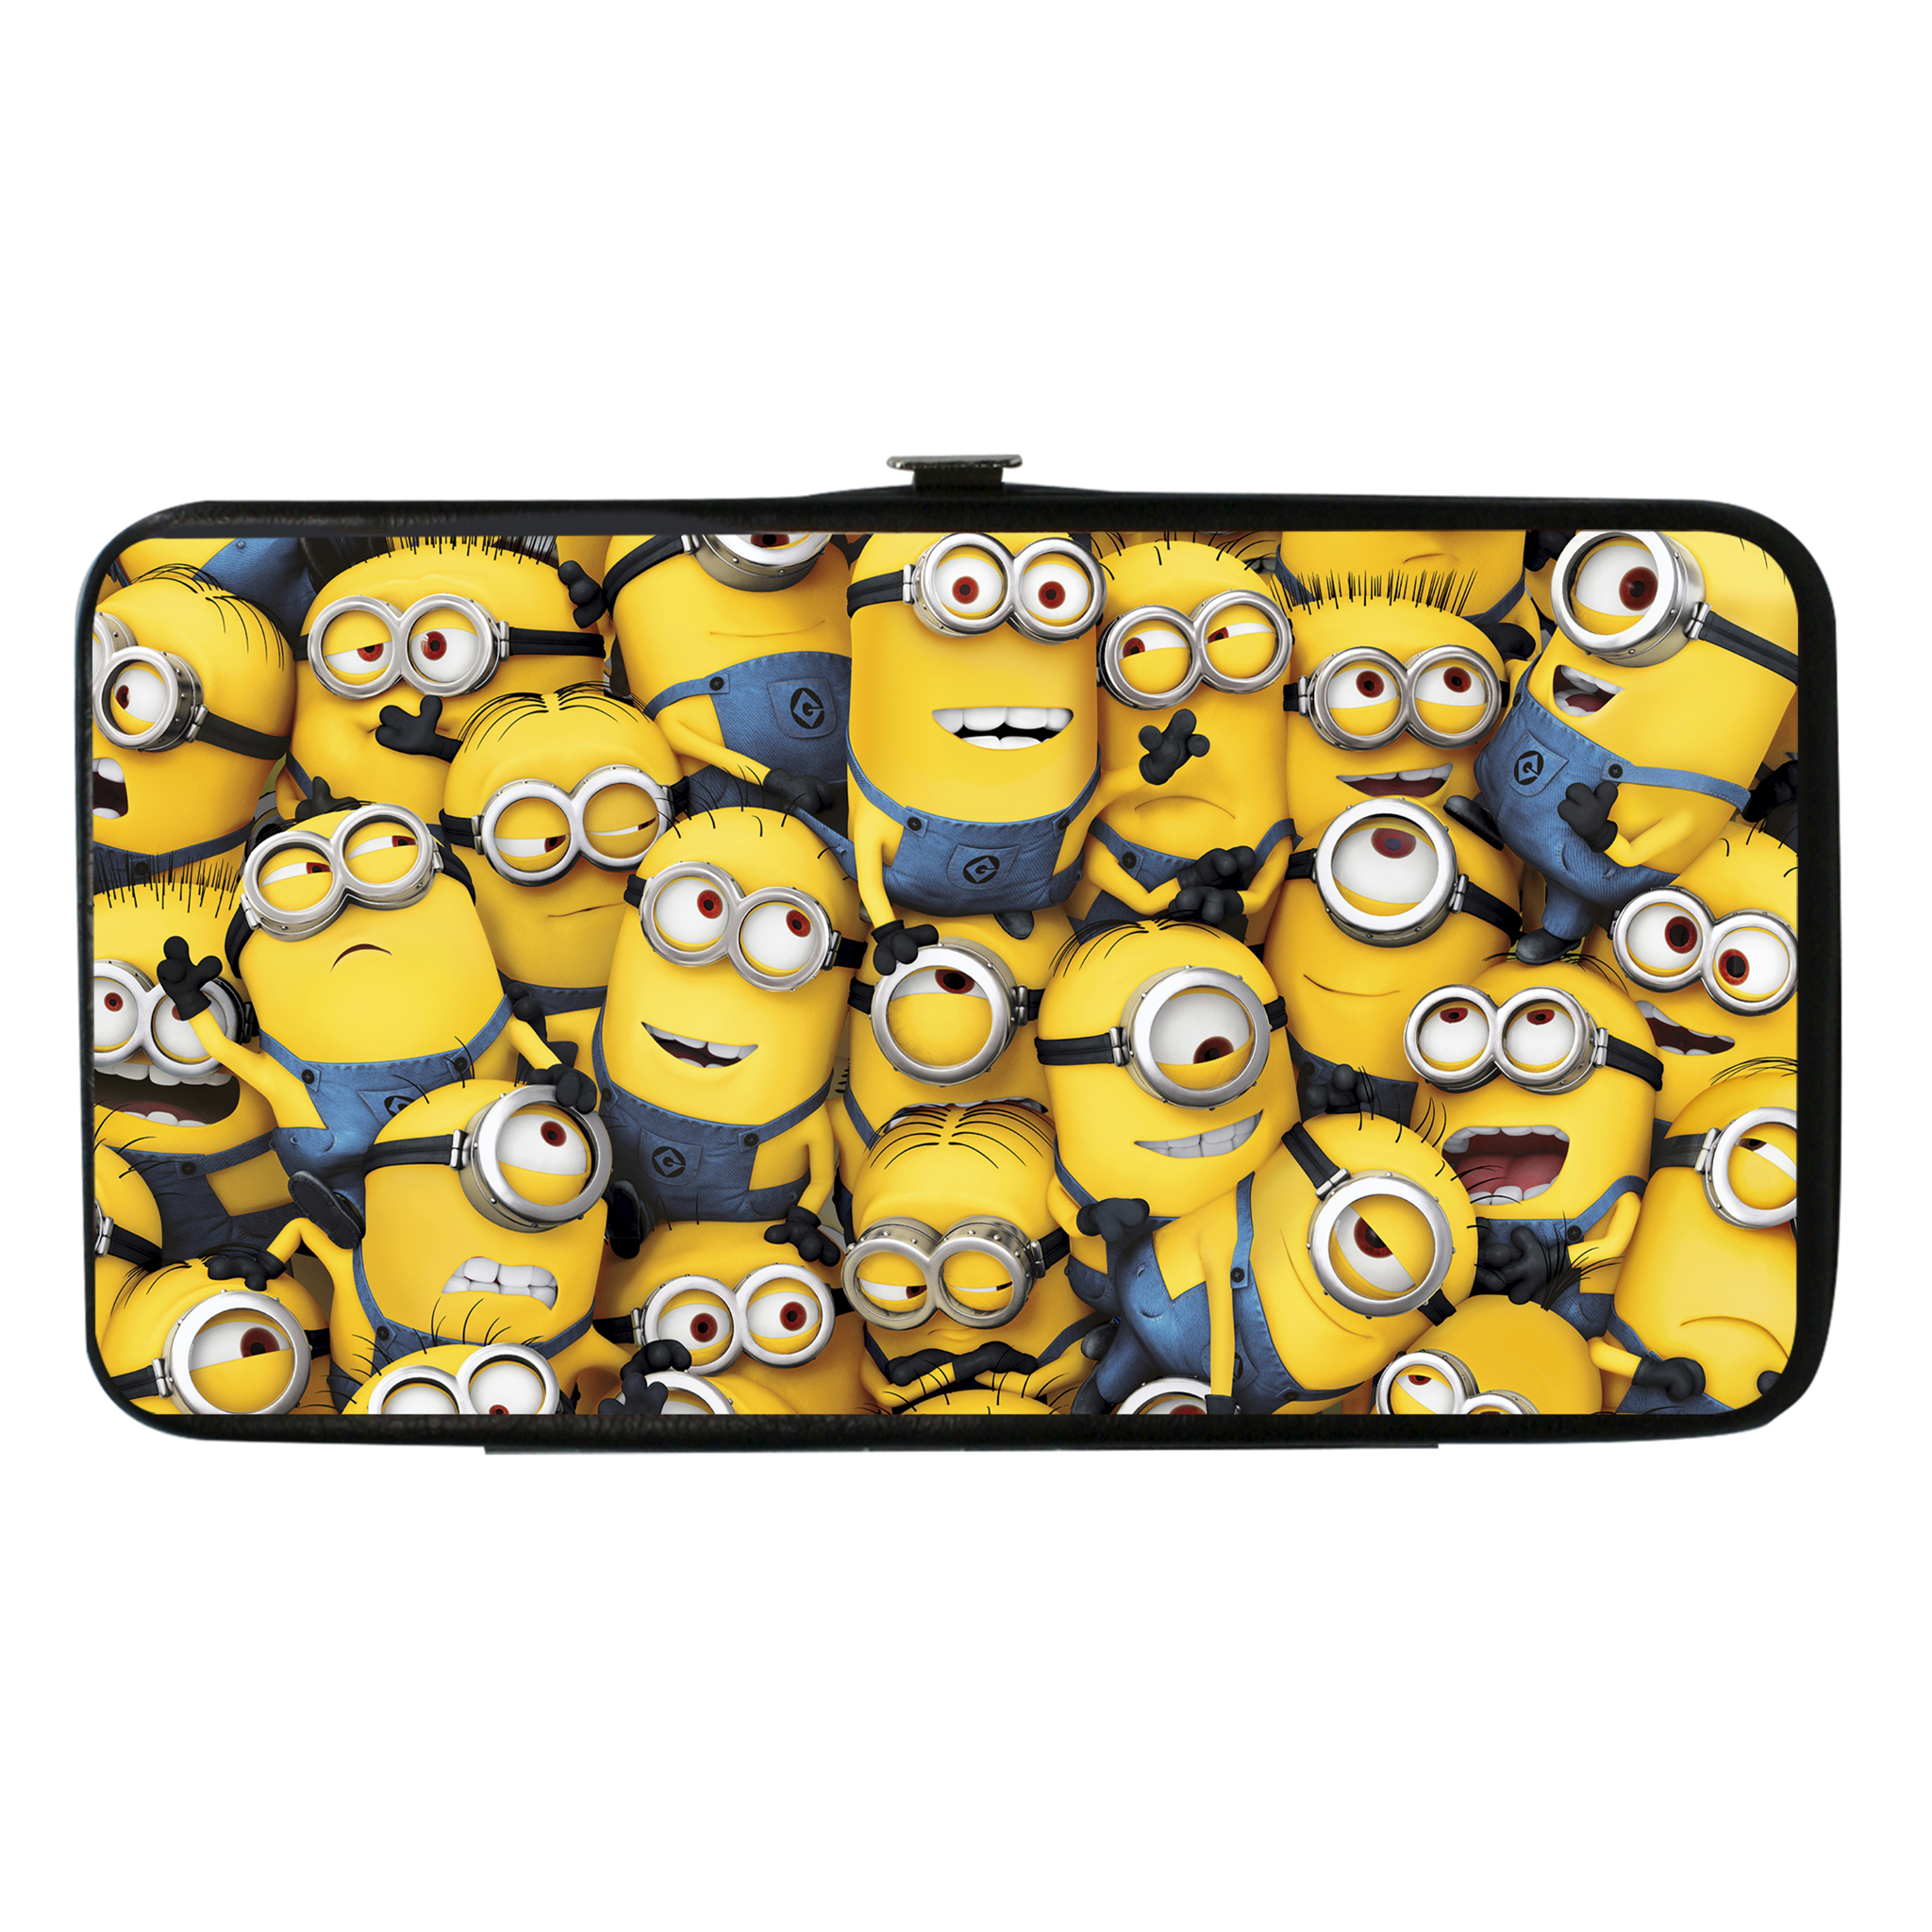 Buckle Down  Kids Despicable Me Minion Hinged Card Case Wallet,